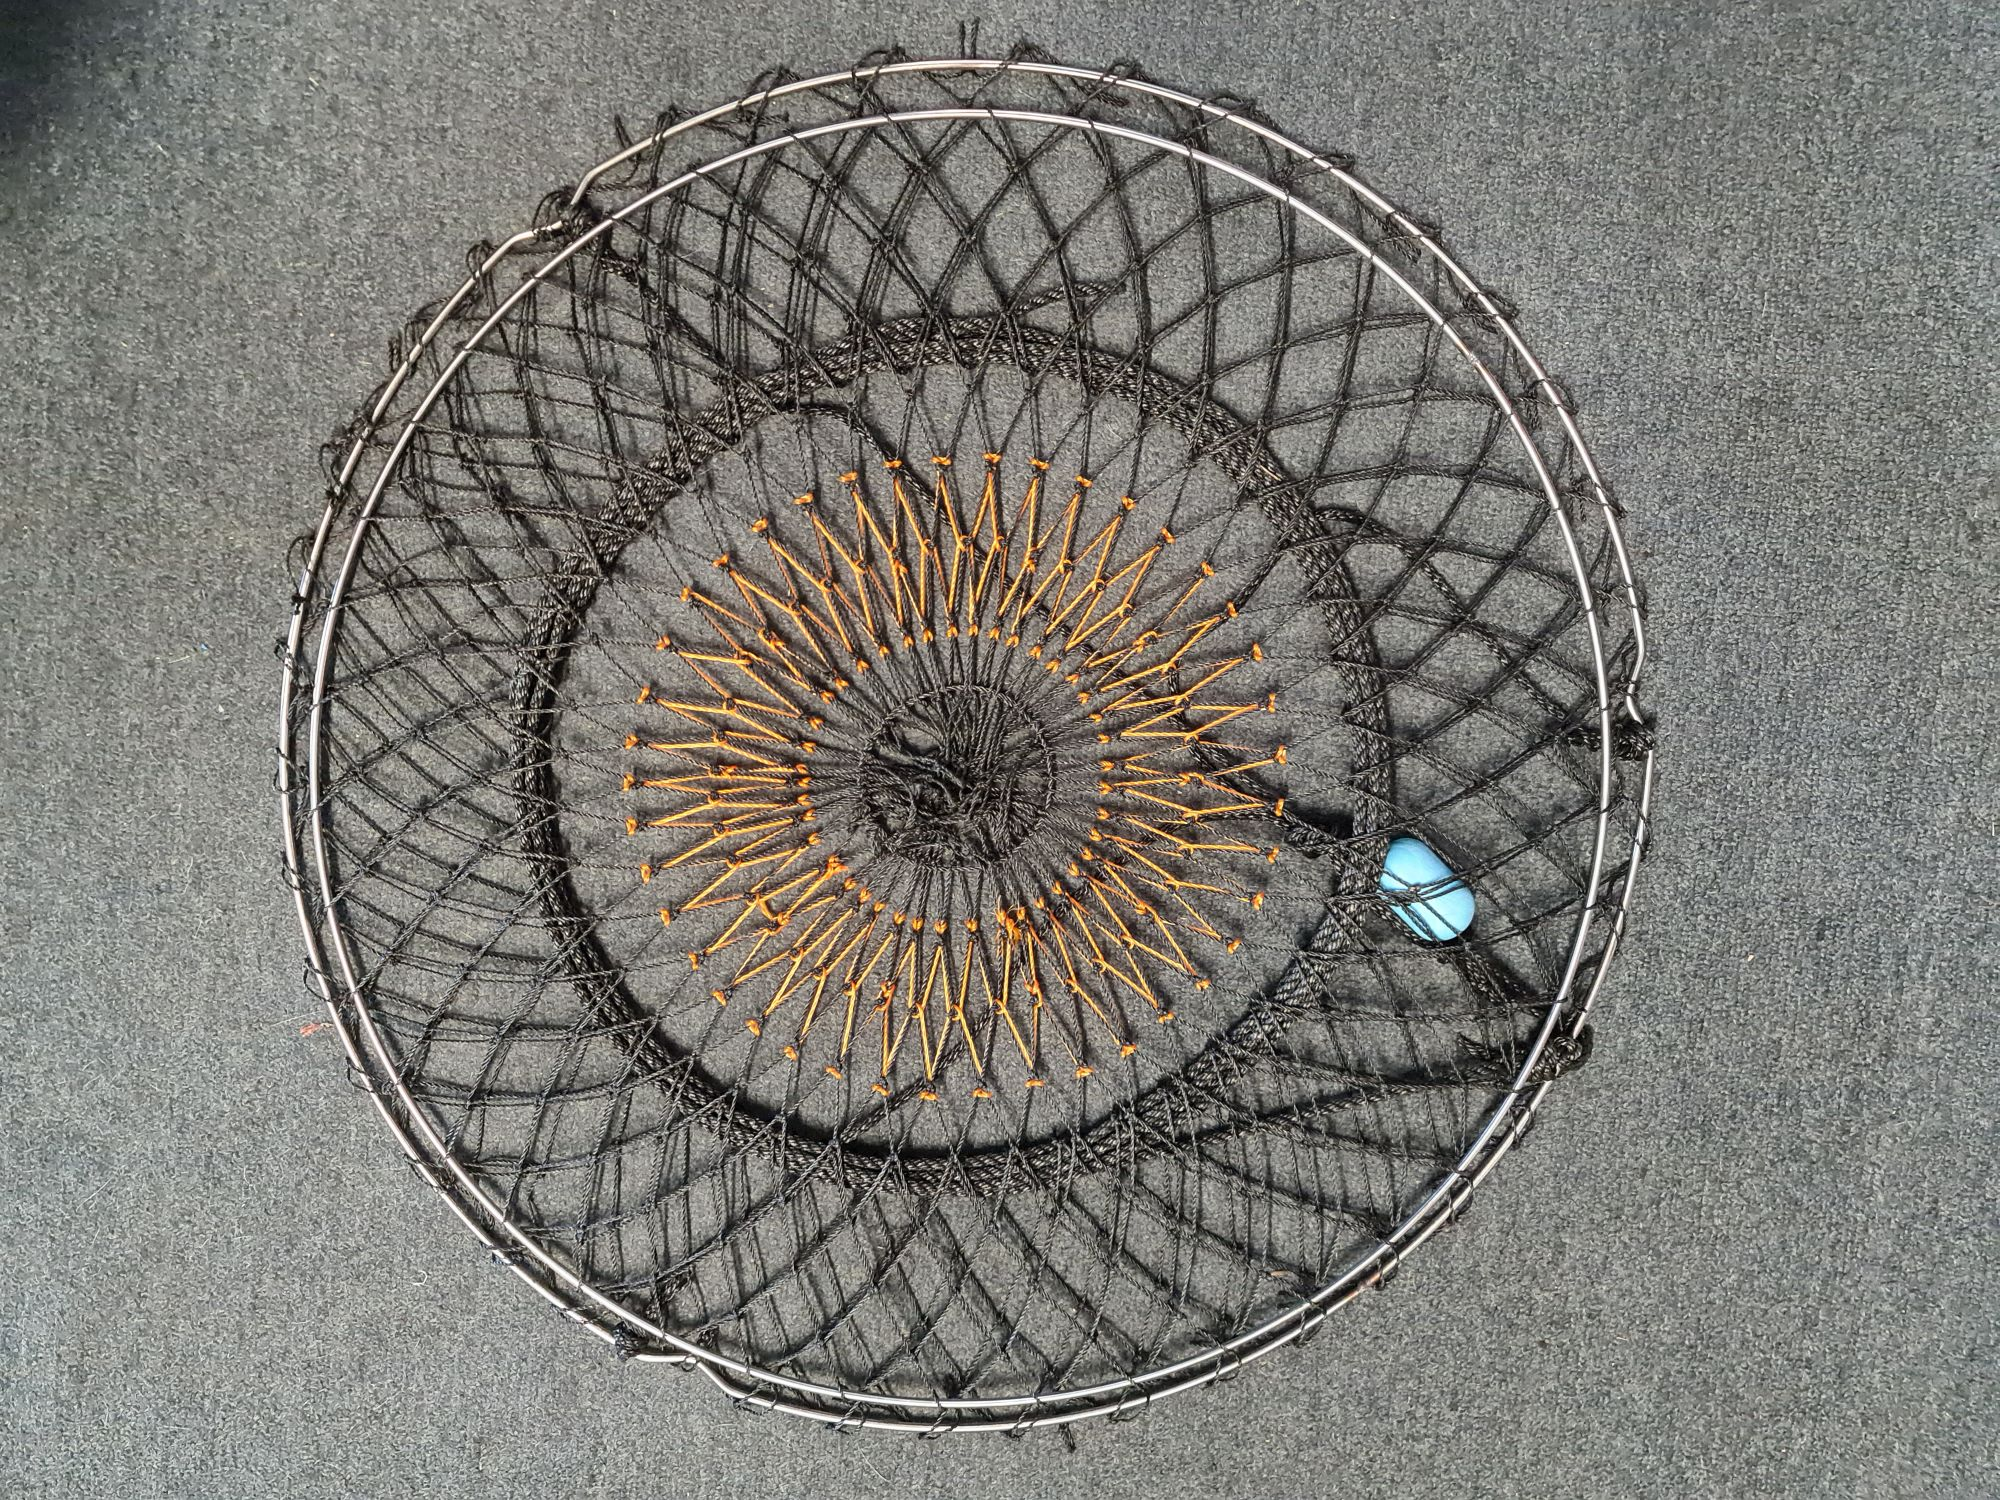 75cm Stainless Steel Crab Nets with luminous eye For Sale Perth